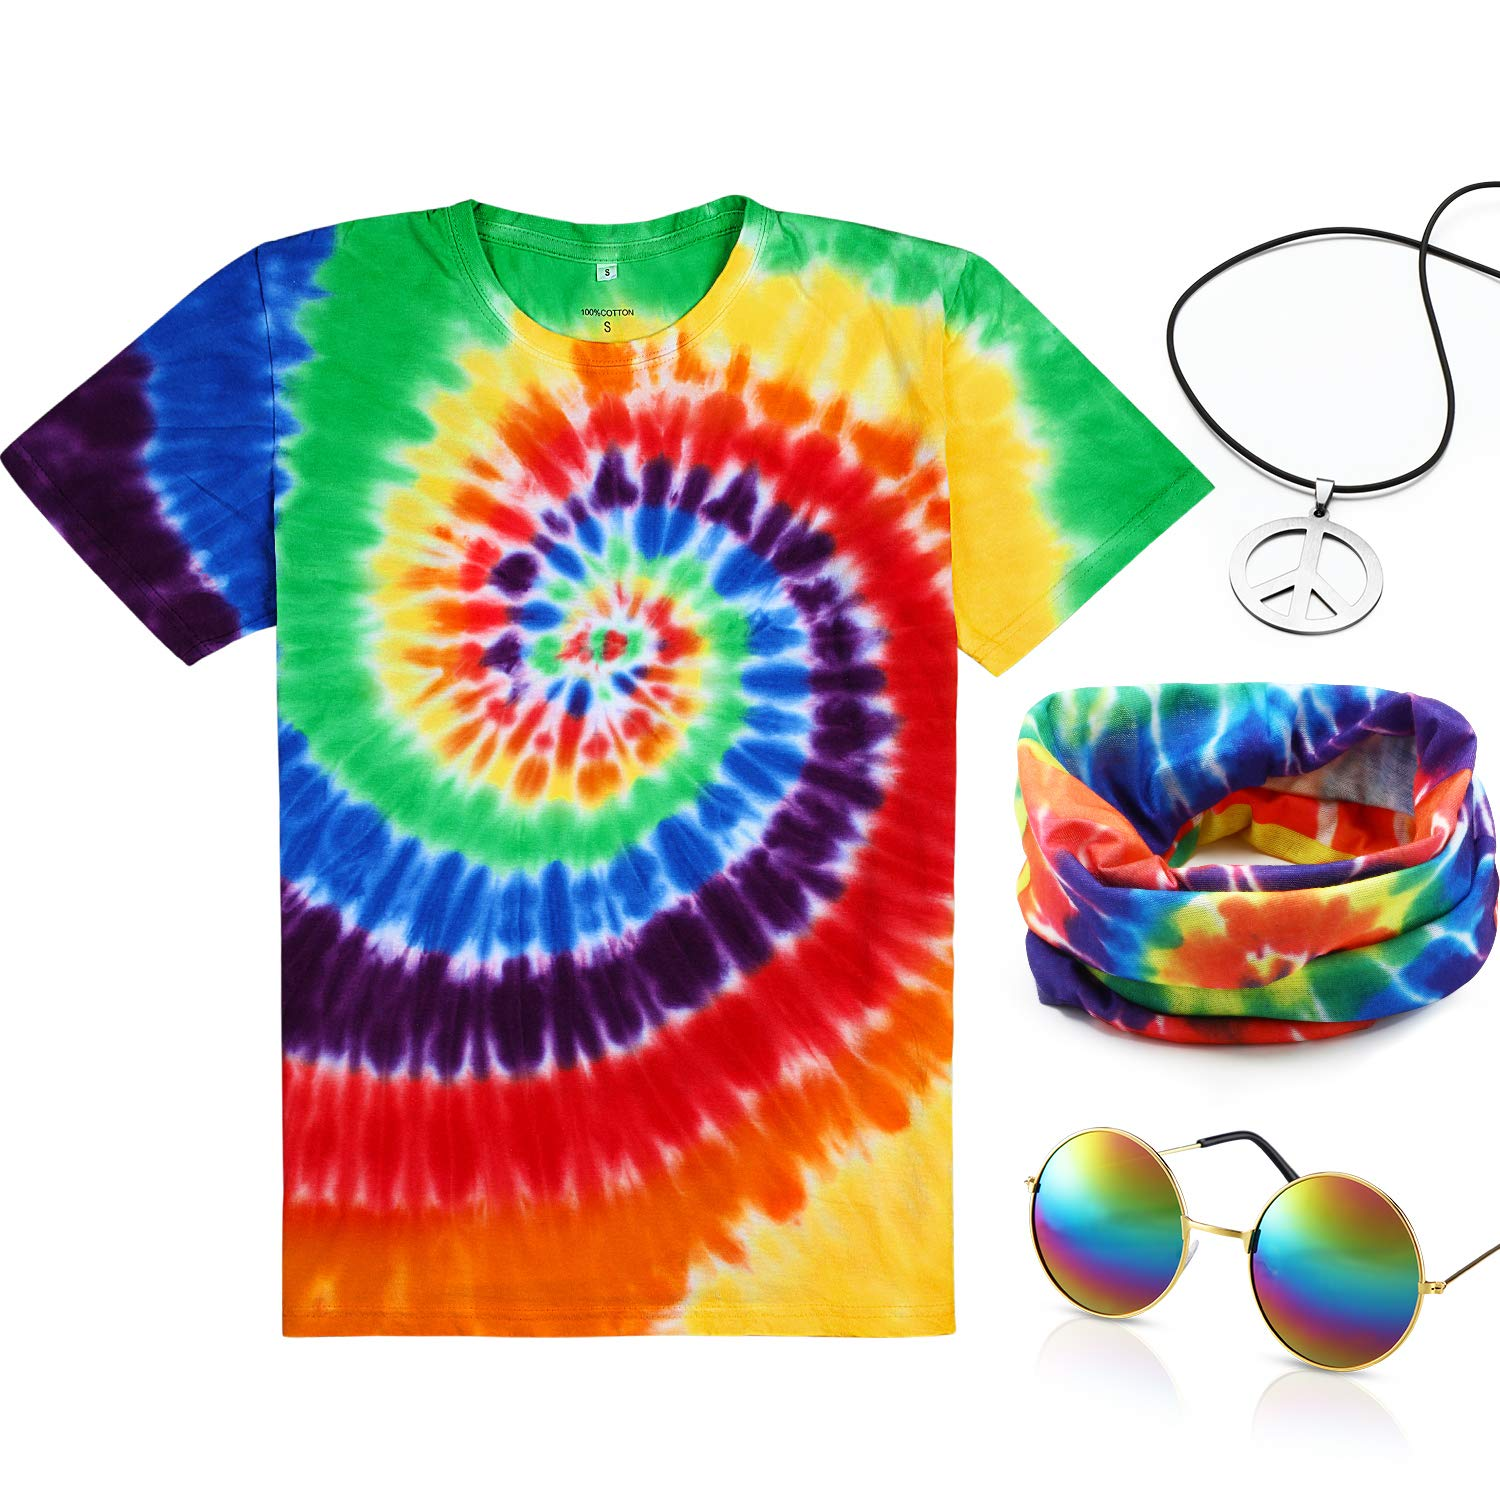 Hippie Dress | Long, Boho, Vintage, 70s 4 Pieces Hippie Costume Set Include Colorful Tie-Dye T-Shirt Peace Sign Necklace Headband and Sunglasses for Theme Parties $23.99 AT vintagedancer.com